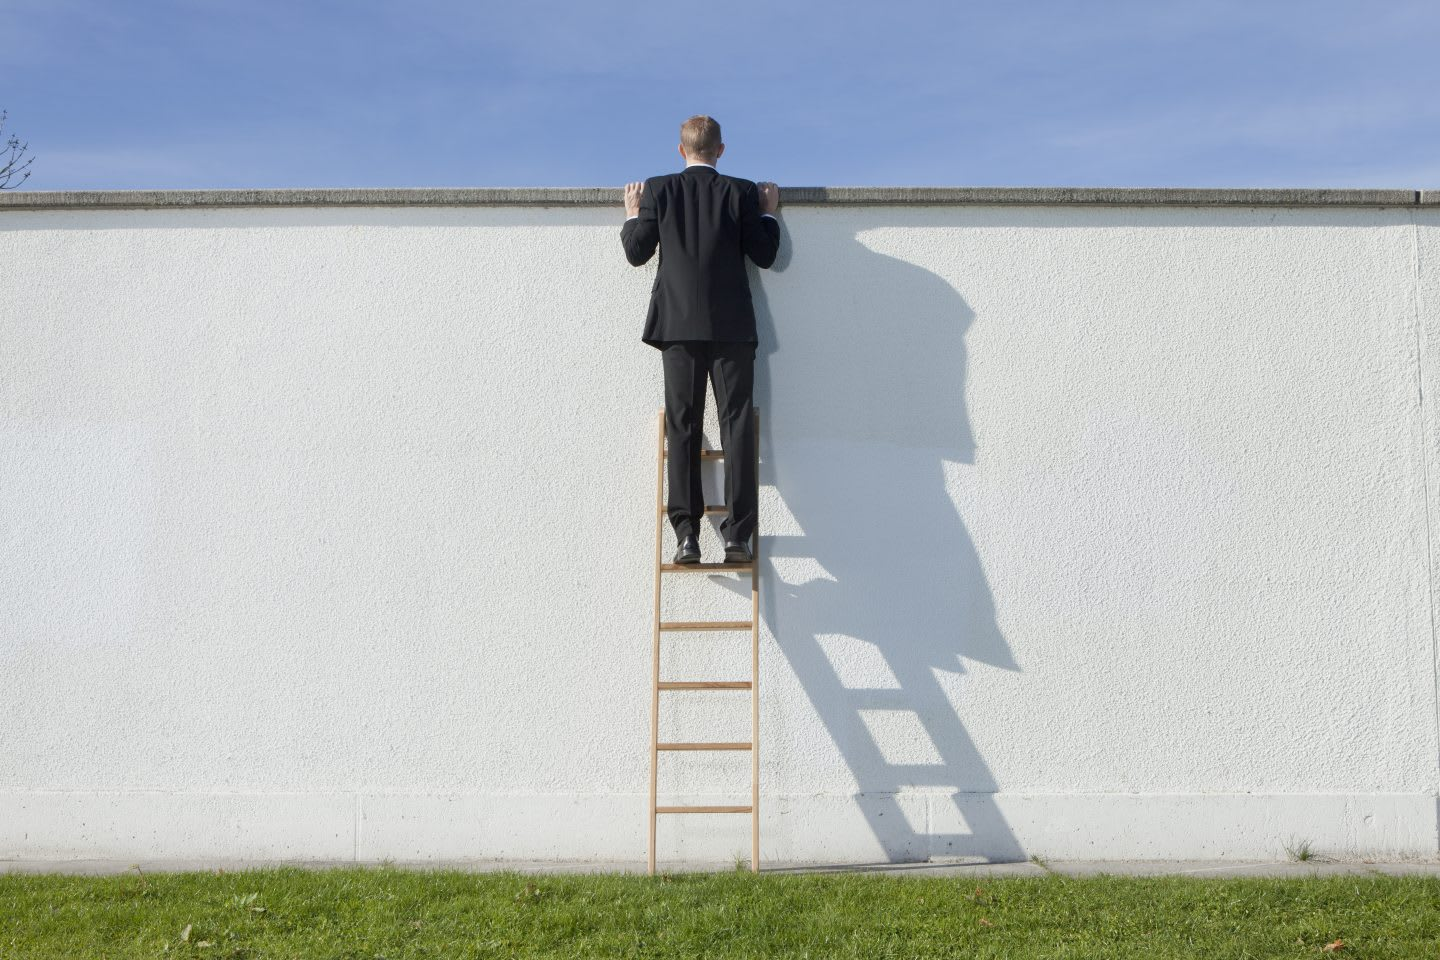 Businessman on ladder looking over wall, curiosity, confidence, unknown, risk, bravery